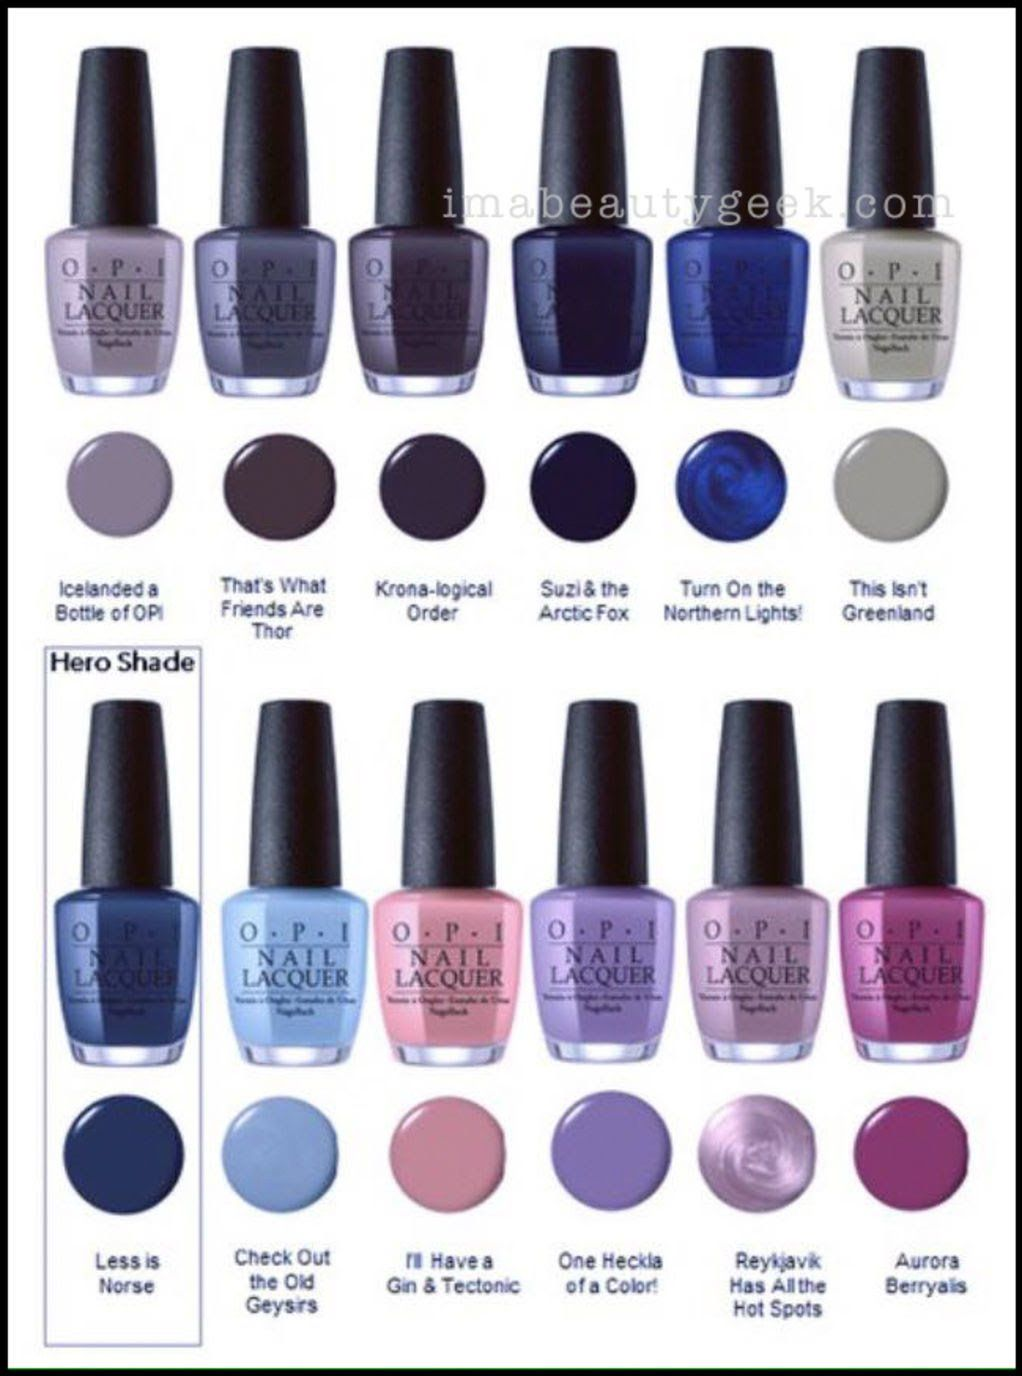 Nail Polish Lottery Club Week 8: OPI ICELAND SWATCHES & REVIEW FW 2017 COLLECTION